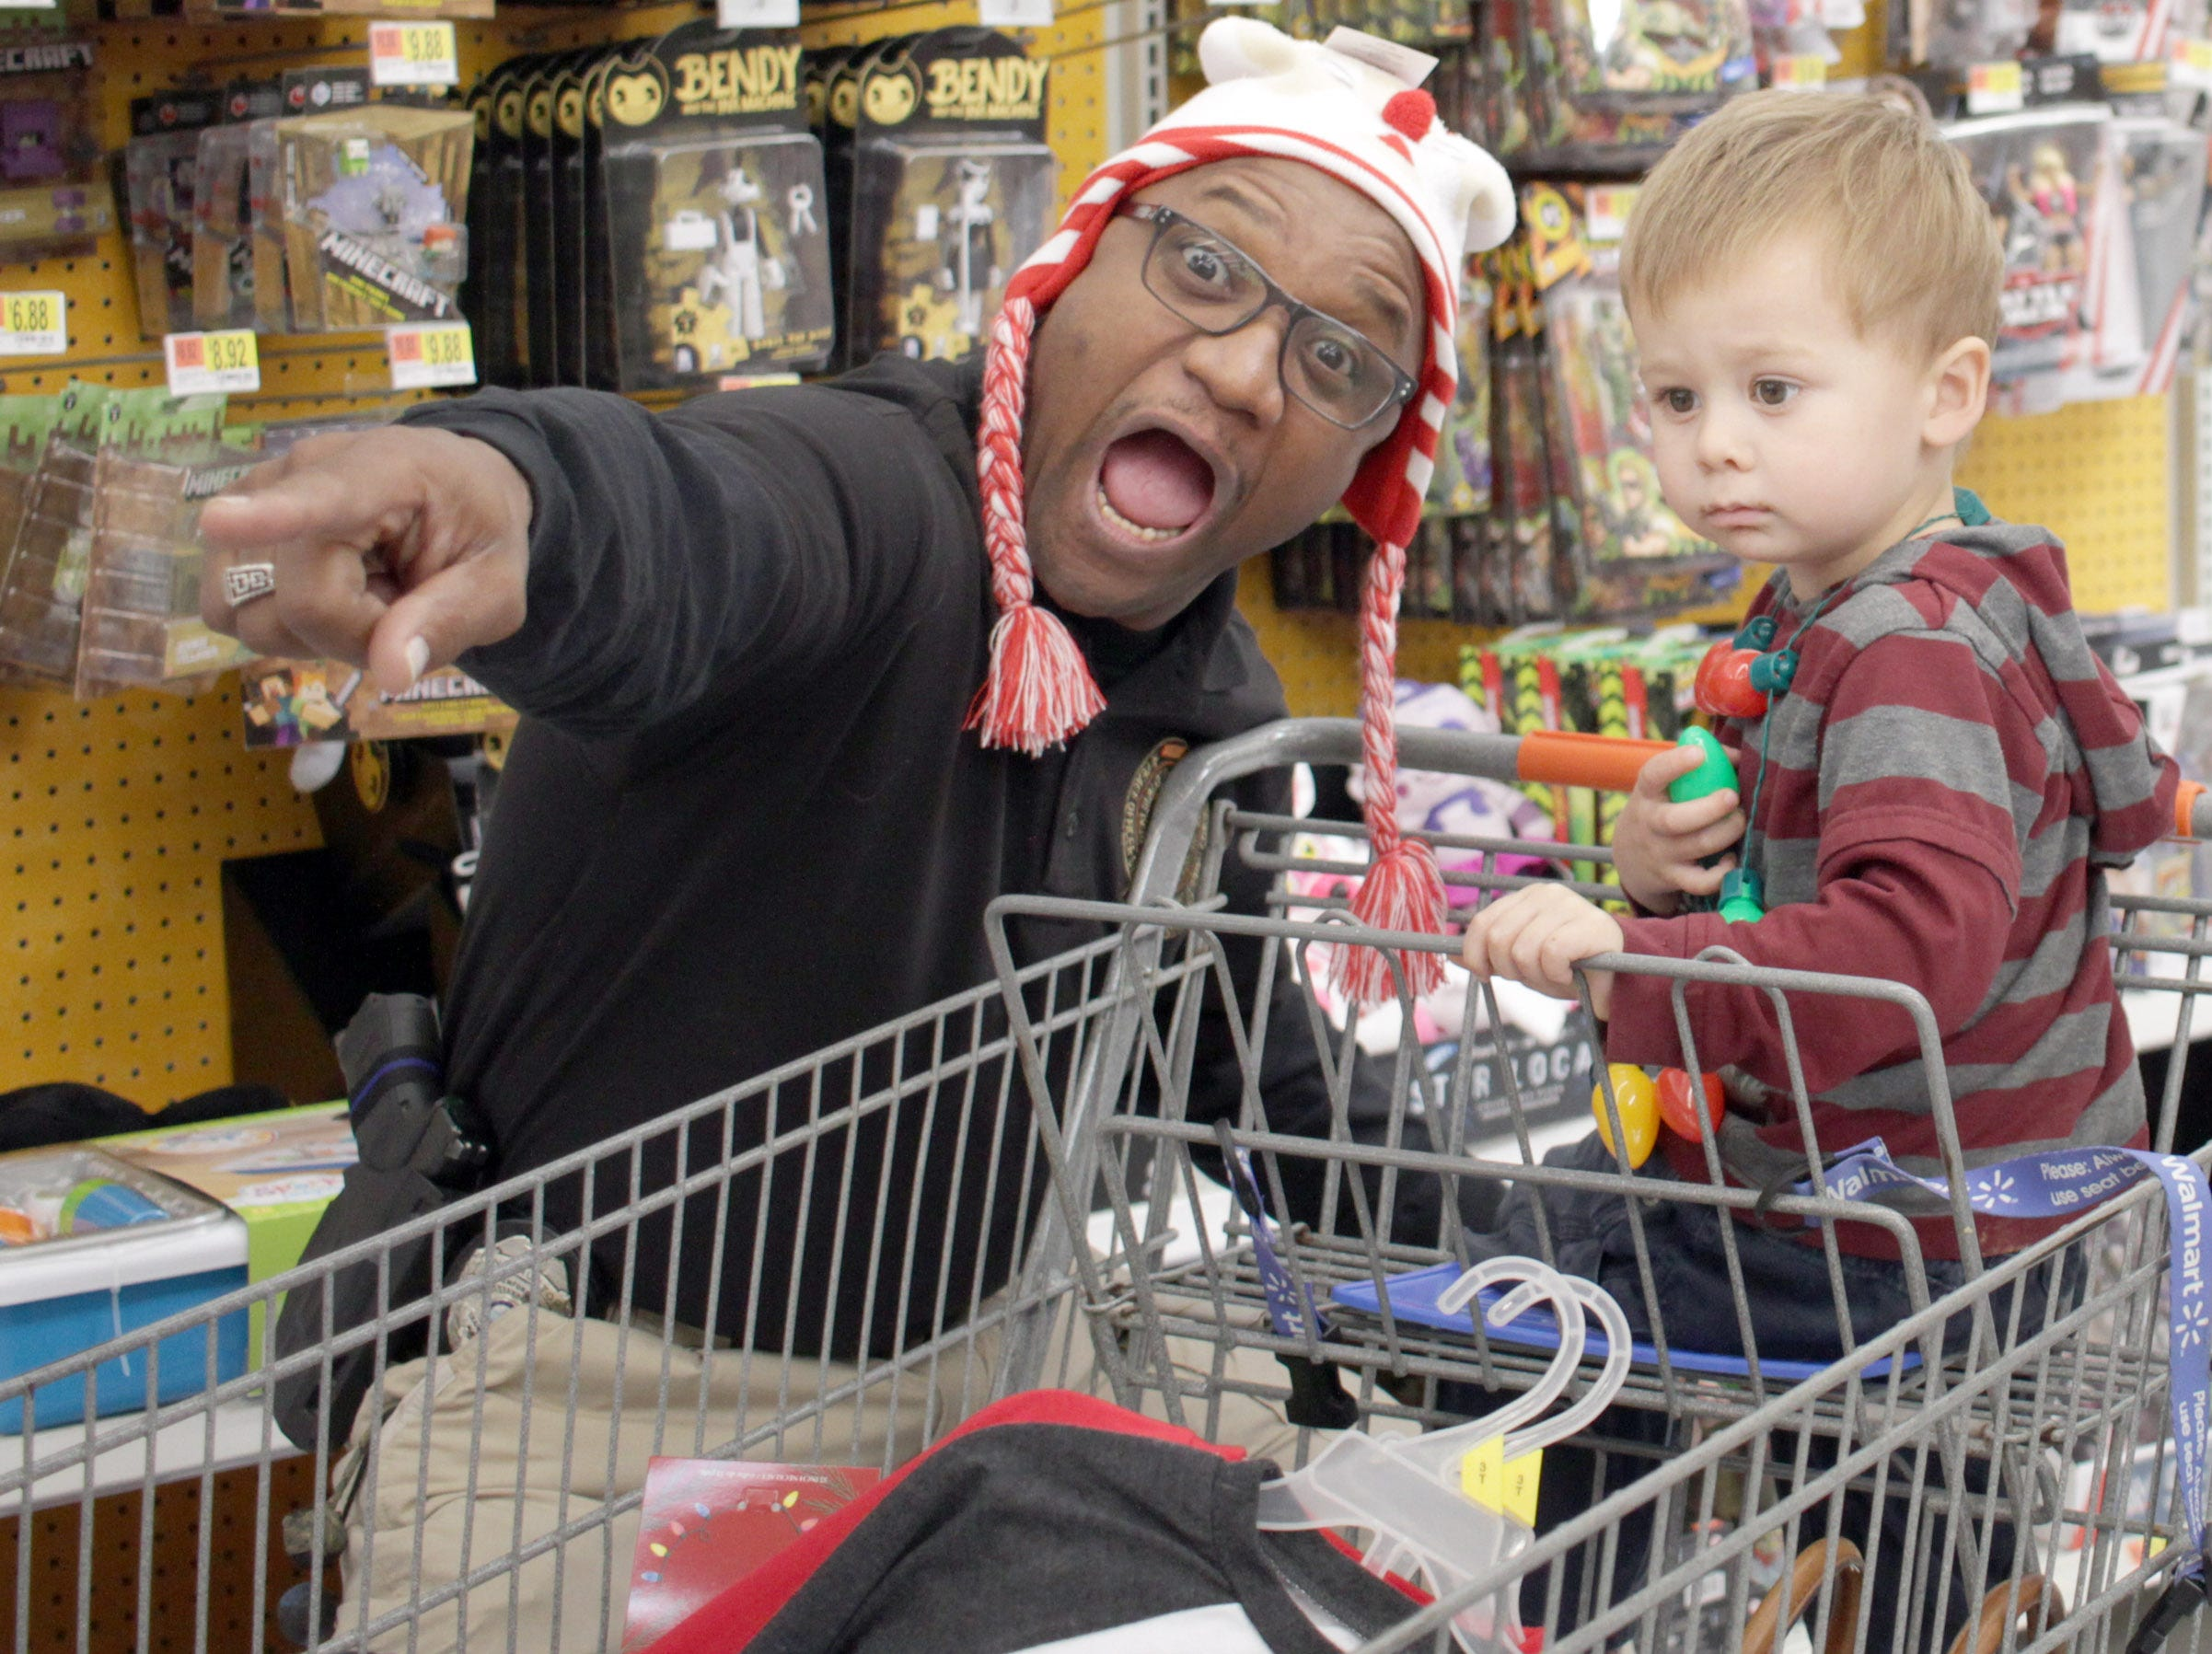 Officer Dexter Mines has some fun with Billy Reddiker  (2) during Shop with a cop in Ashland City on Saturday, December 15, 2018.